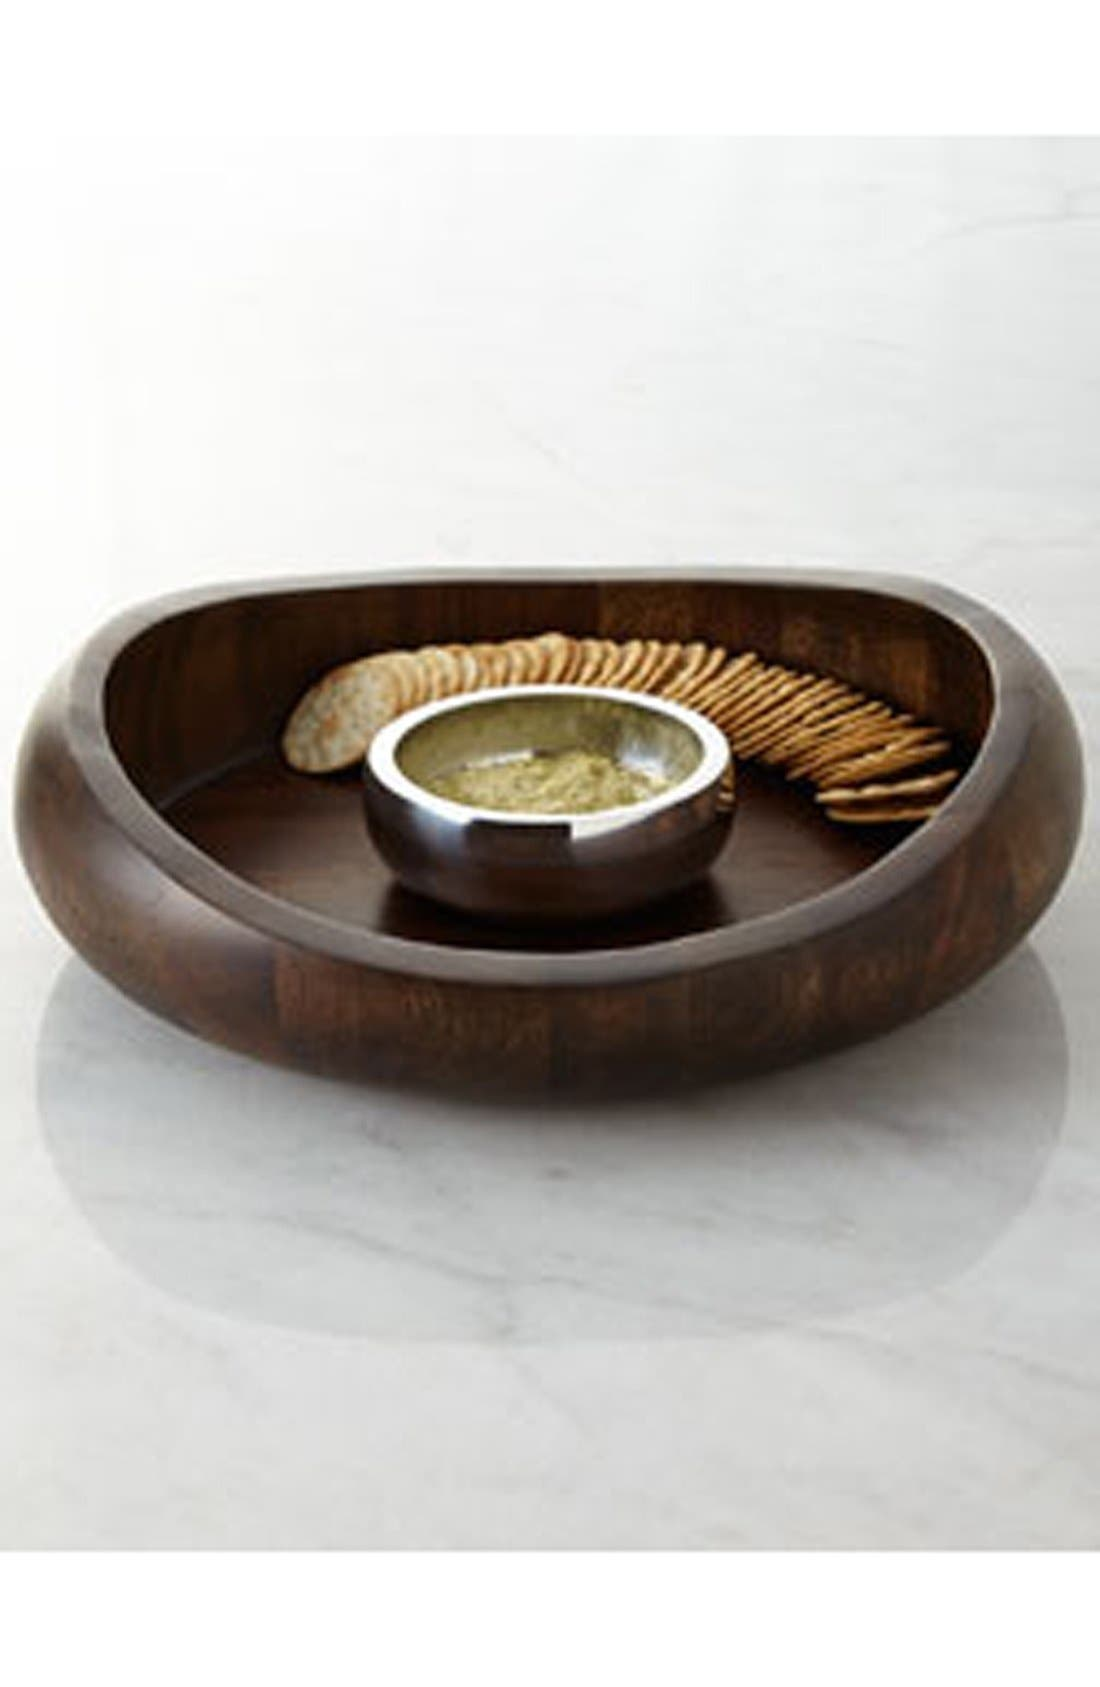 Alternate Image 2  - Nambé 'Butterfly' Chip & Dip Server (Nordstrom Exclusive)